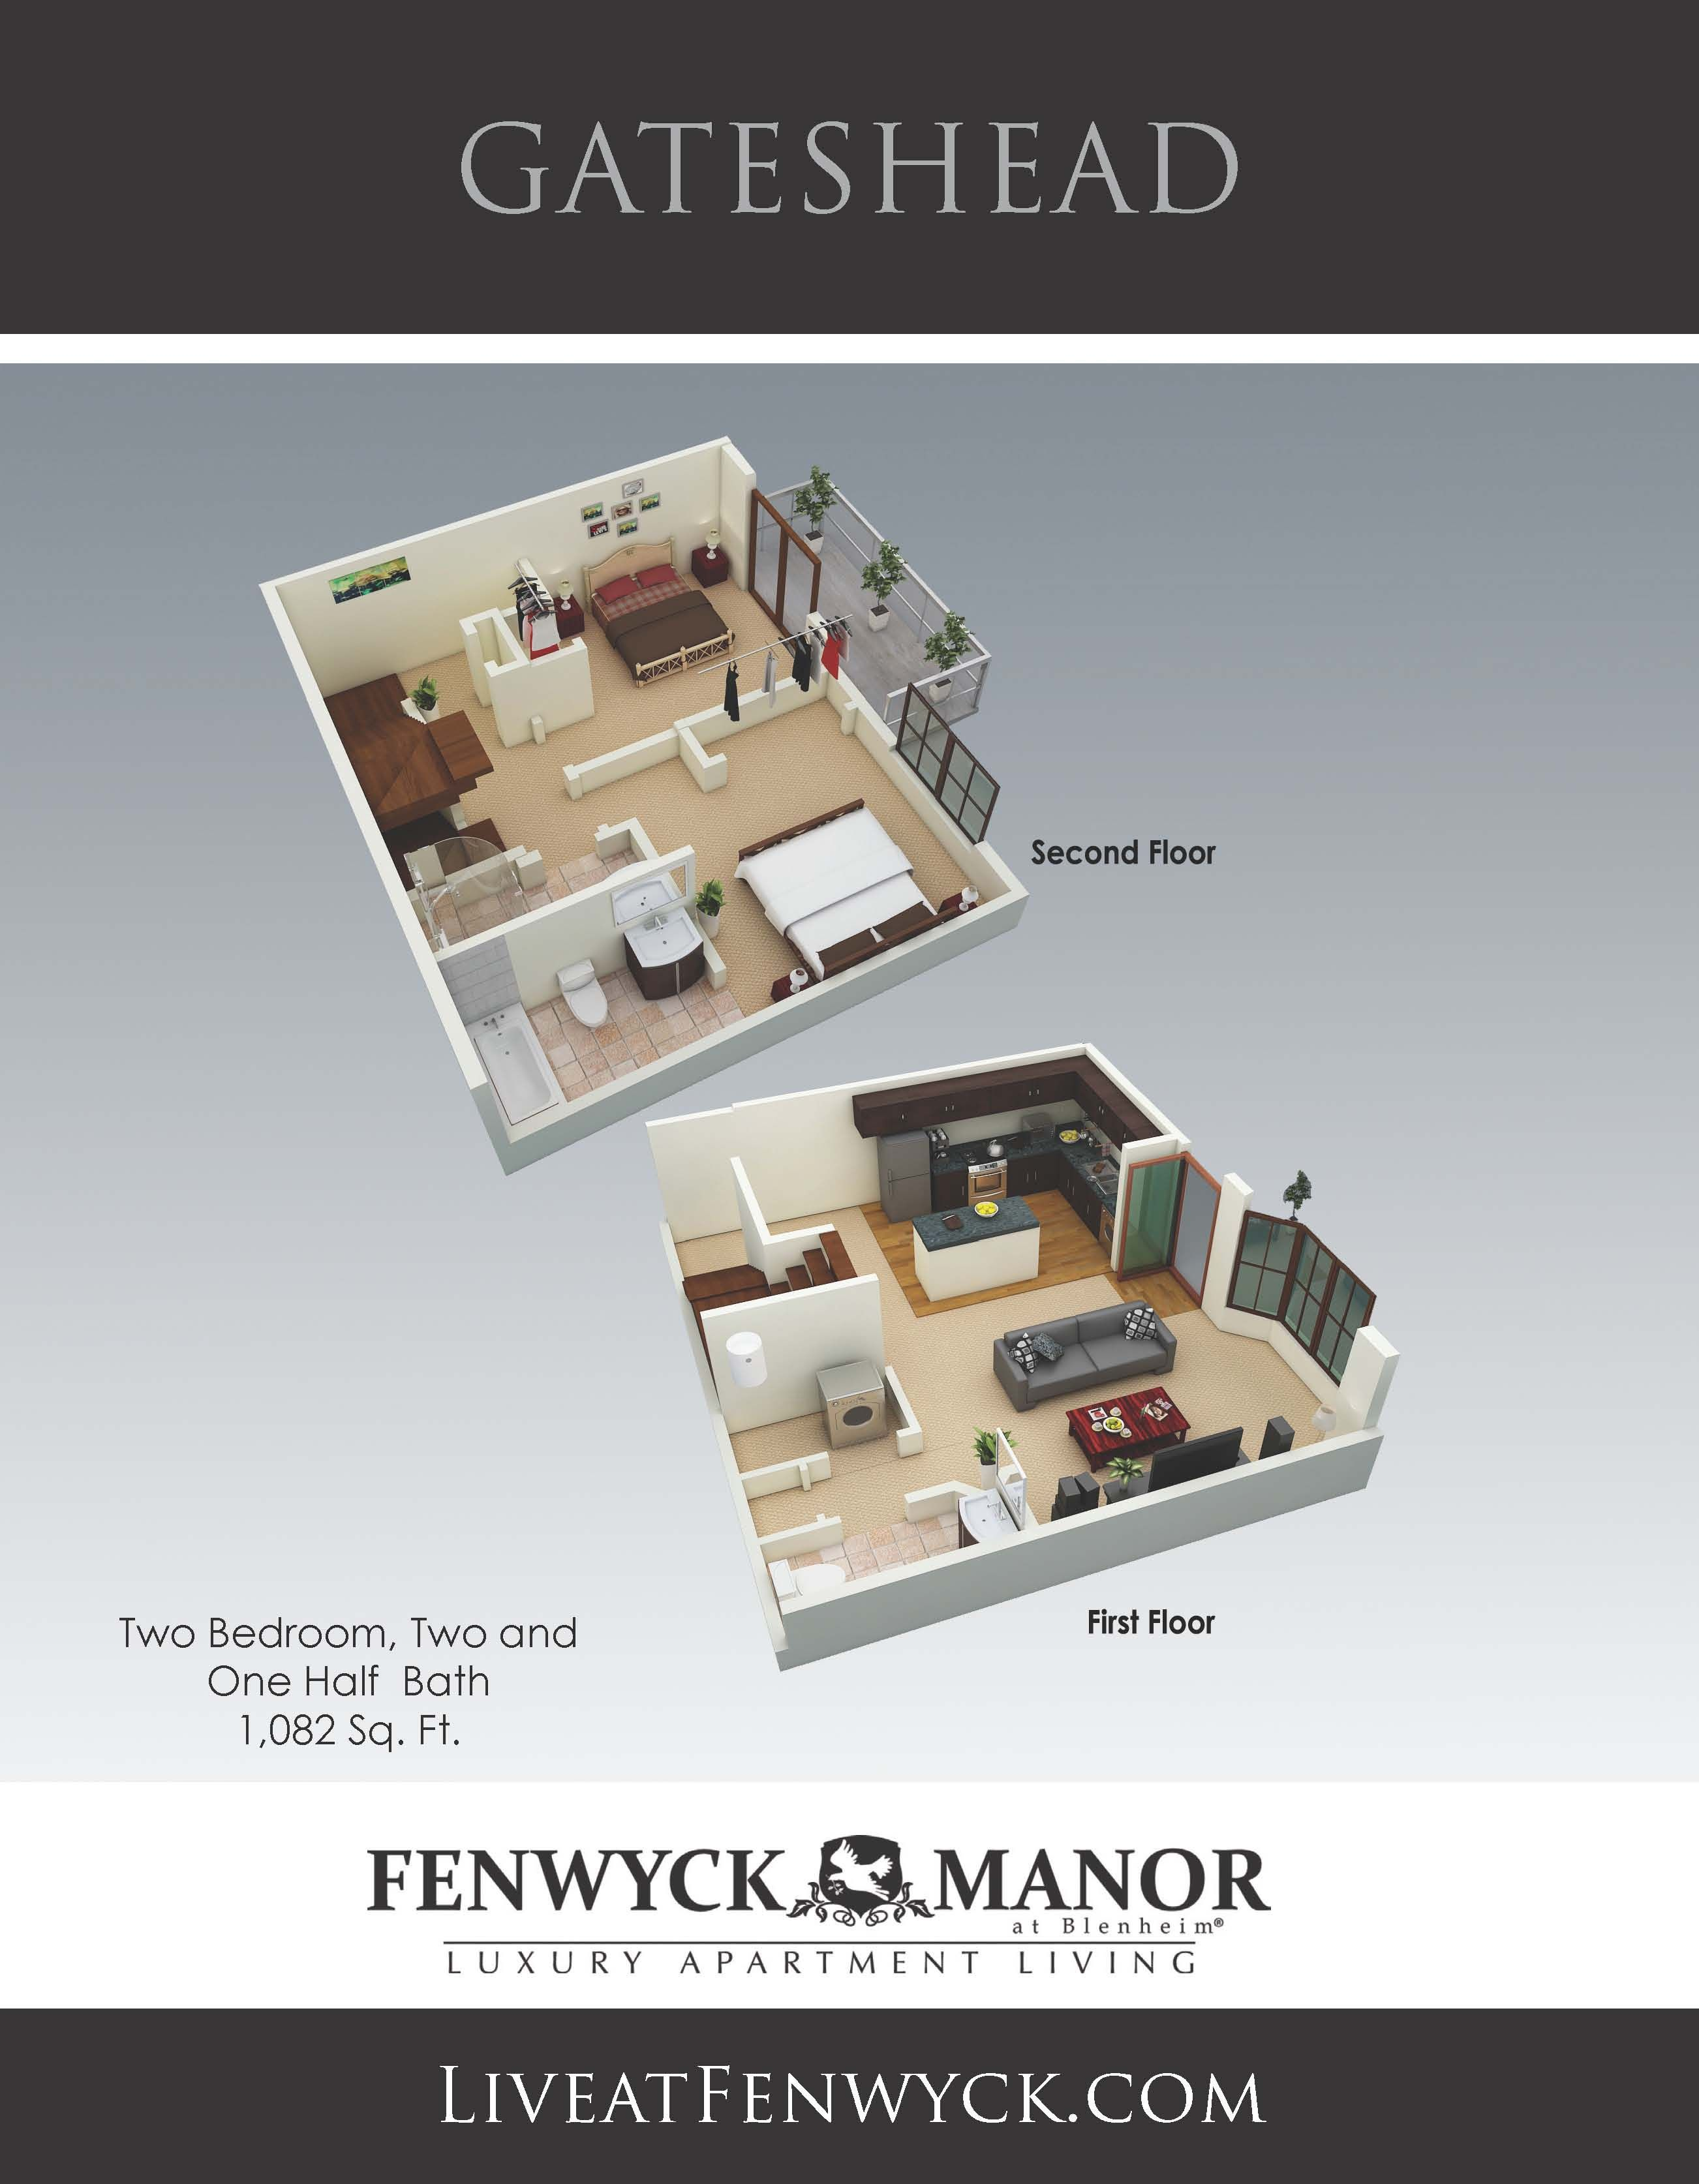 Pin By Fenwyck Manor On Fenwyck Manor Everything You Need For Moving To Your New Home Floor Plans Manor Manor Apartments